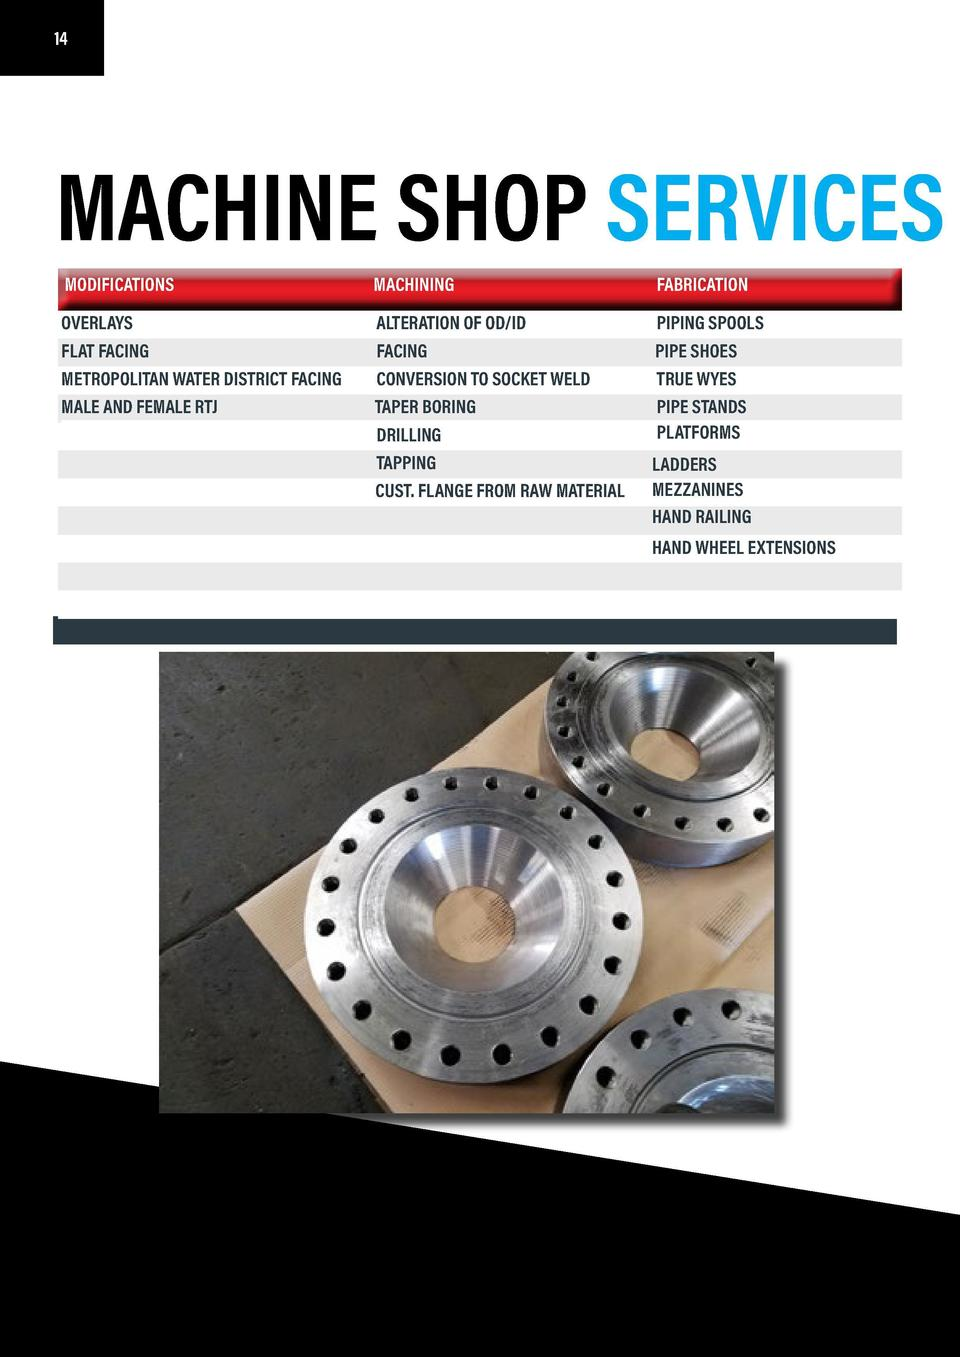 14 14  15  MACHINE SHOP SERVICES MACHINE CAPABILITIES MODIFICATIONS  MACHINING  FABRICATION  OVERLAYS FLAT FACING METROPOL...